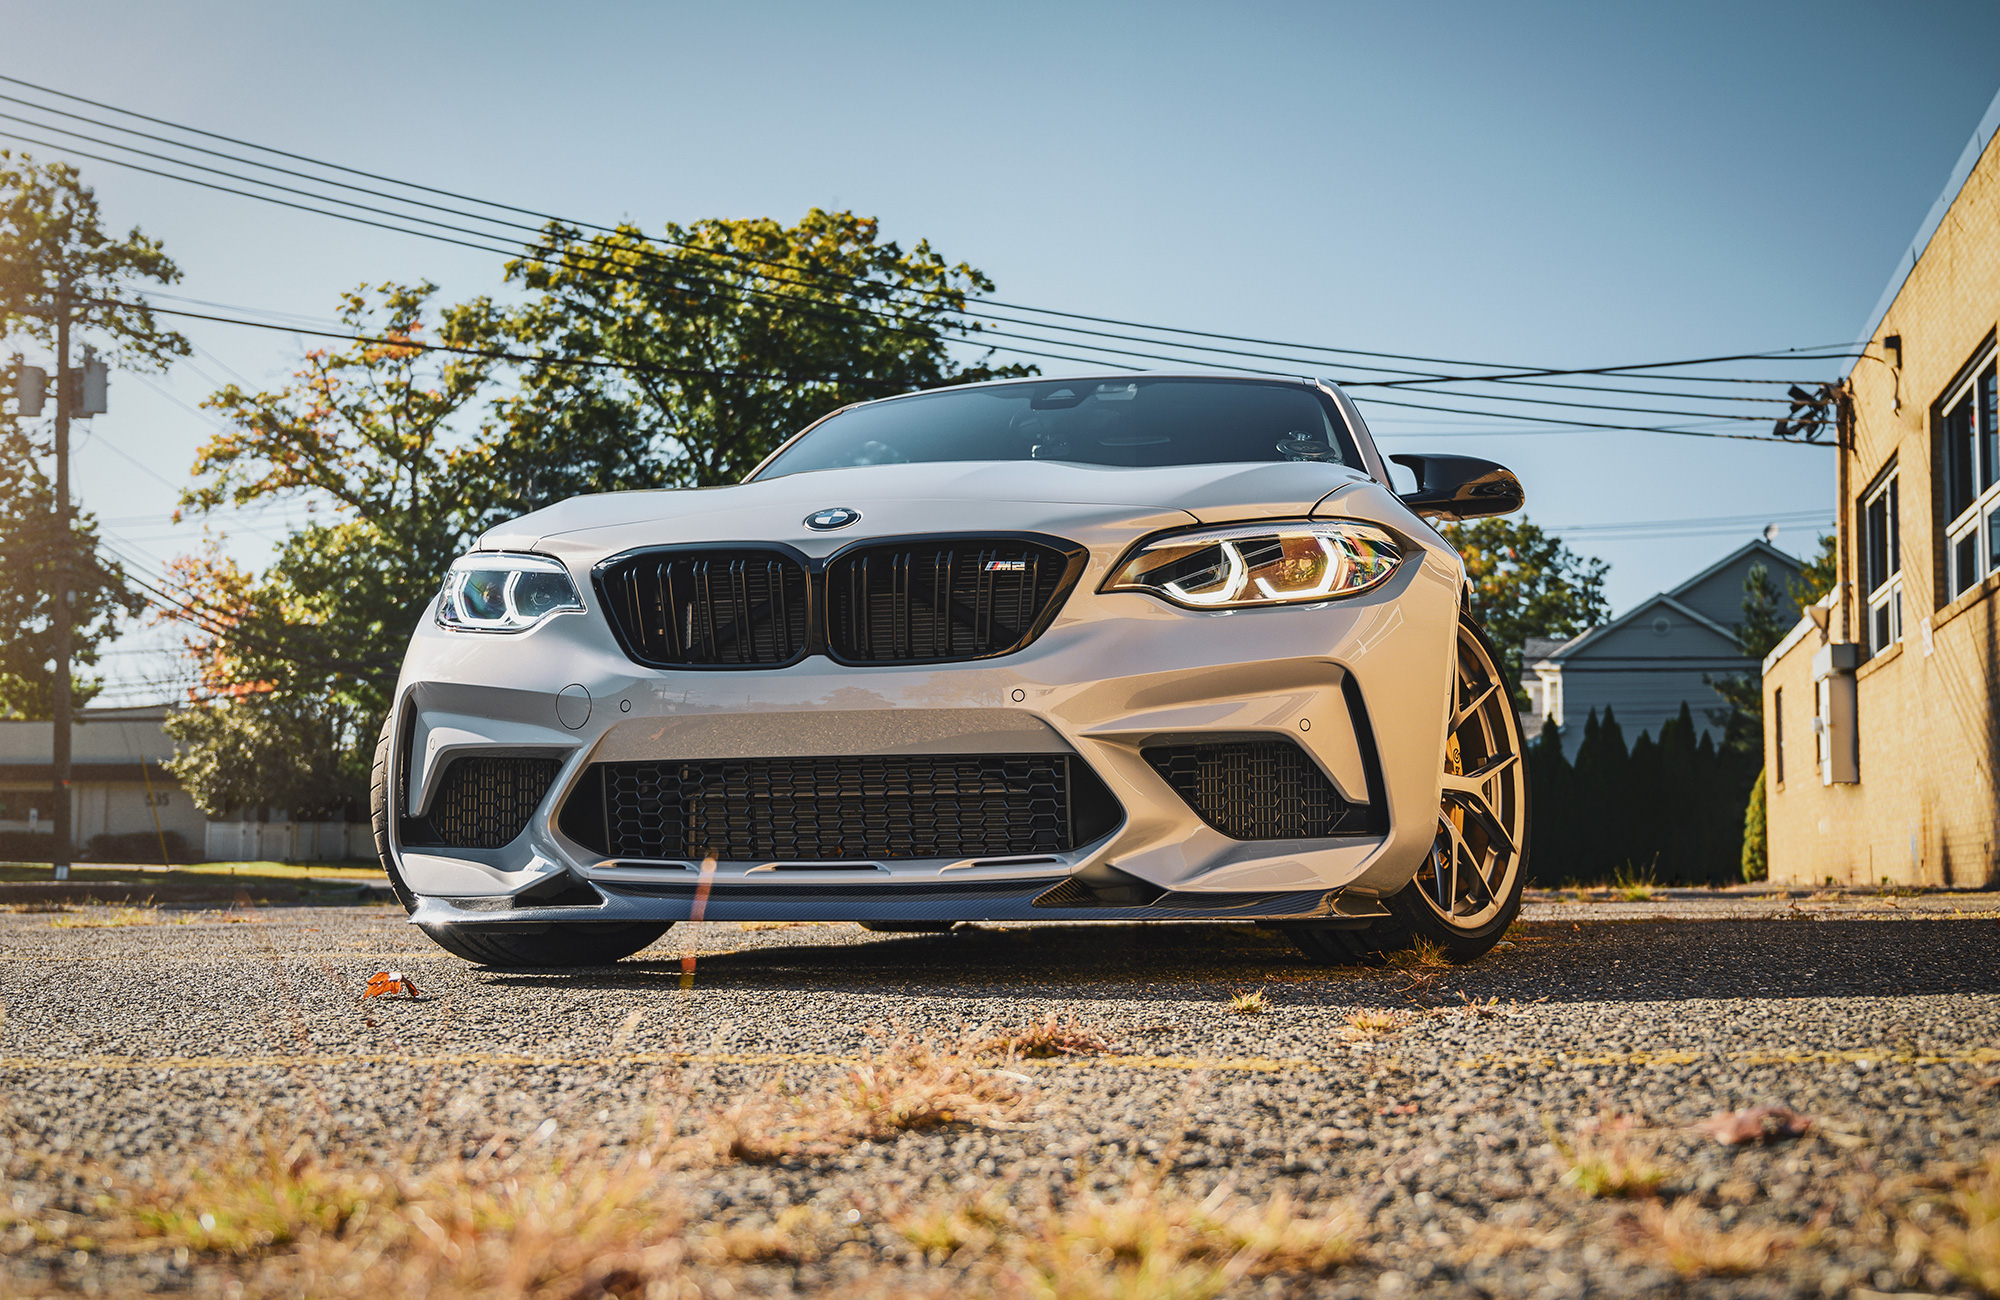 BMW M2 lower grill